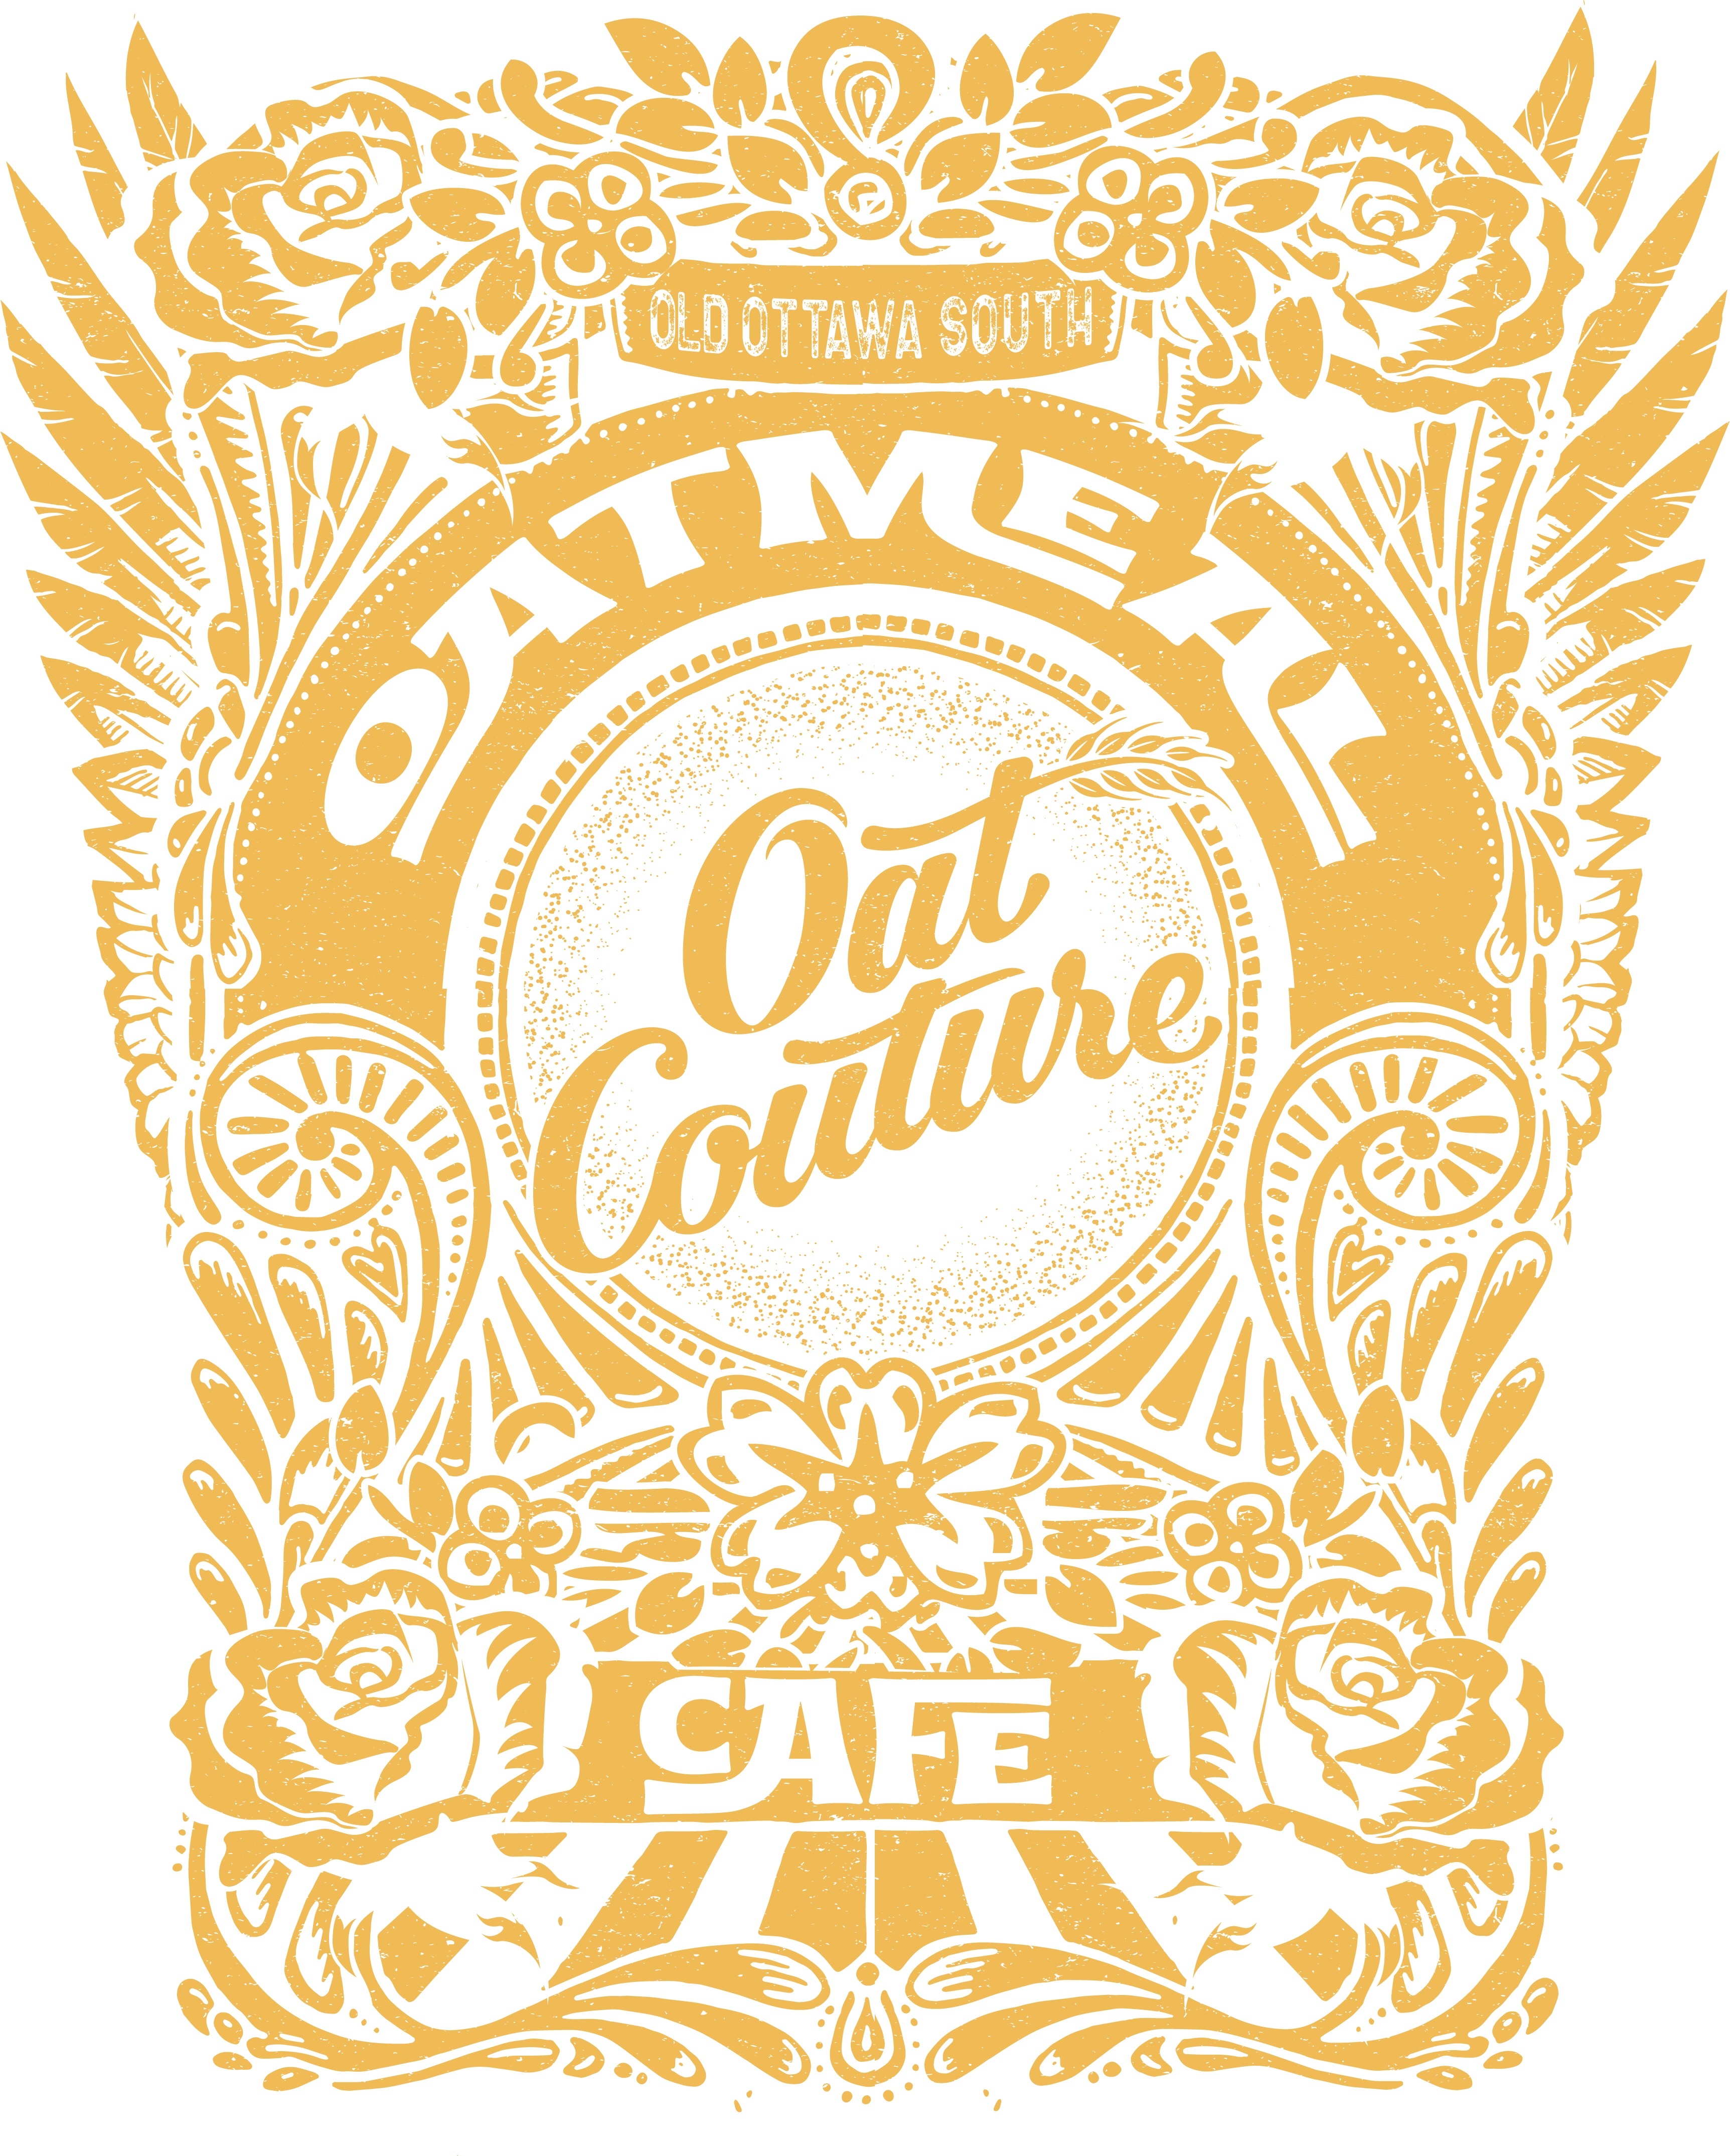 tshirt for an oatmeal cafe